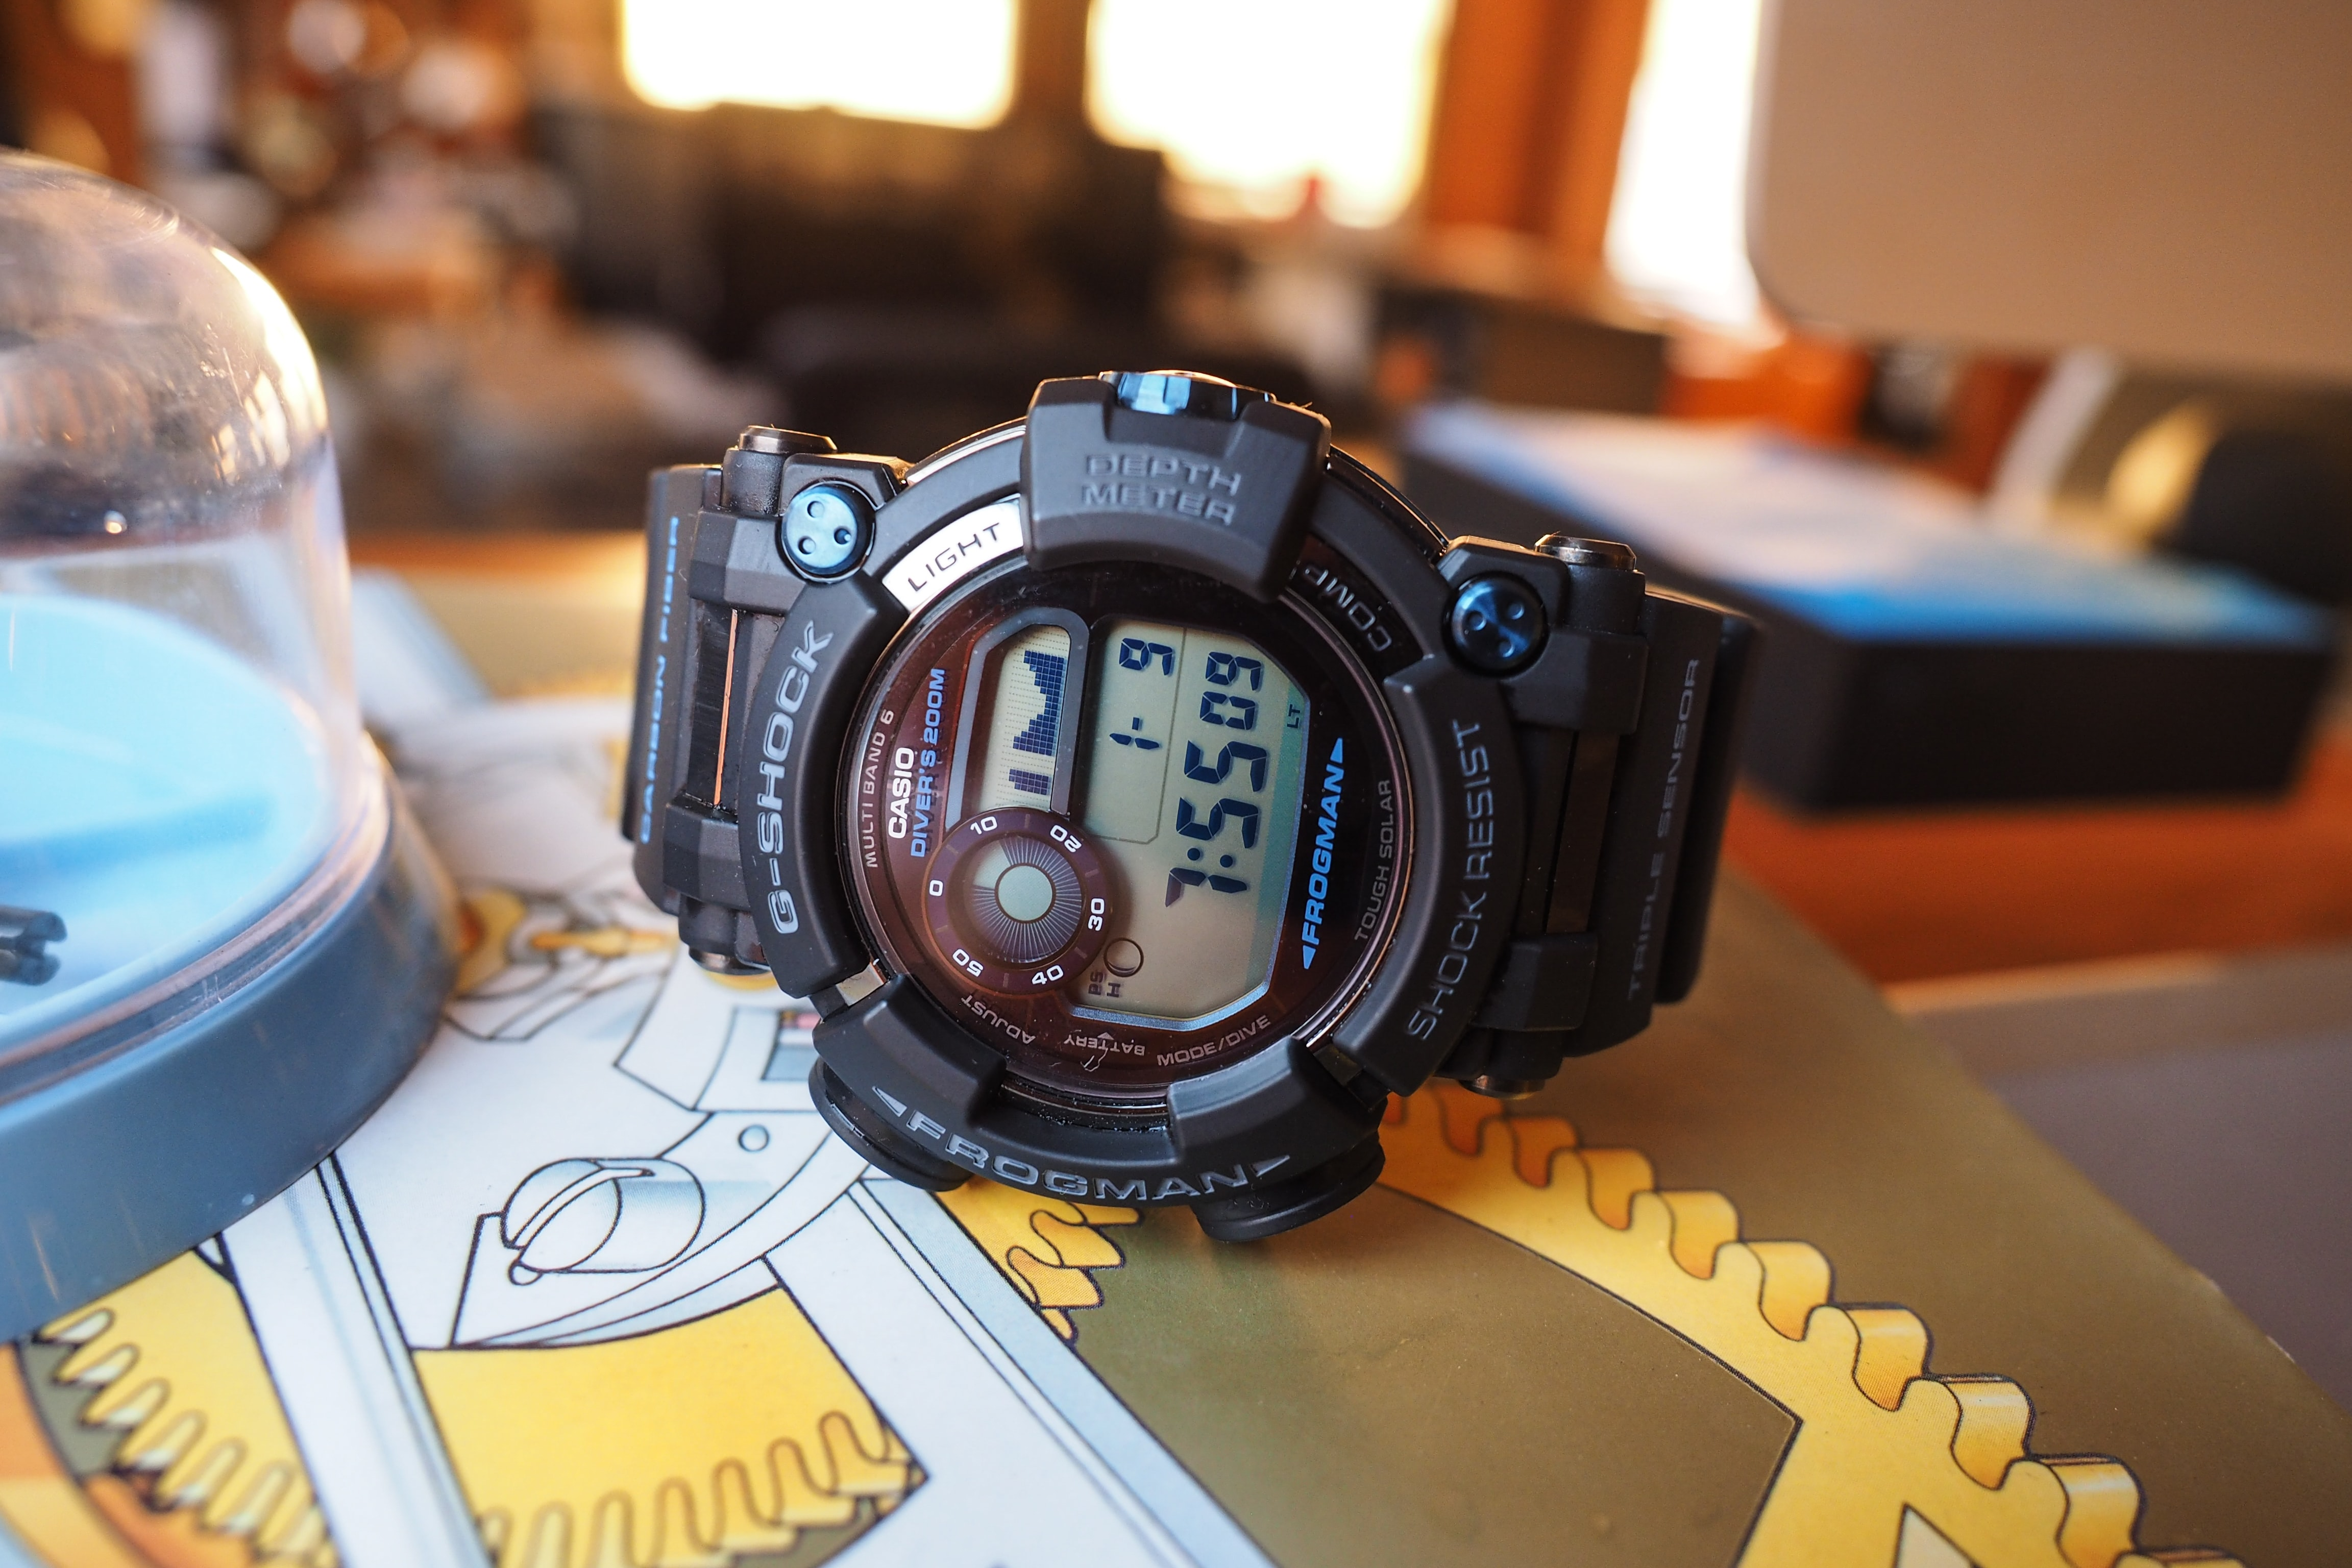 G-Shock Frogman GWF-D1000B A Week On The Wrist: The Casio 'Master Of G' G-Shock Frogman GWF-D1000B, A Great Watch To Wear For Punching A T. Rex A Week On The Wrist: The Casio 'Master Of G' G-Shock Frogman GWF-D1000B, A Great Watch To Wear For Punching A T. Rex P1091518